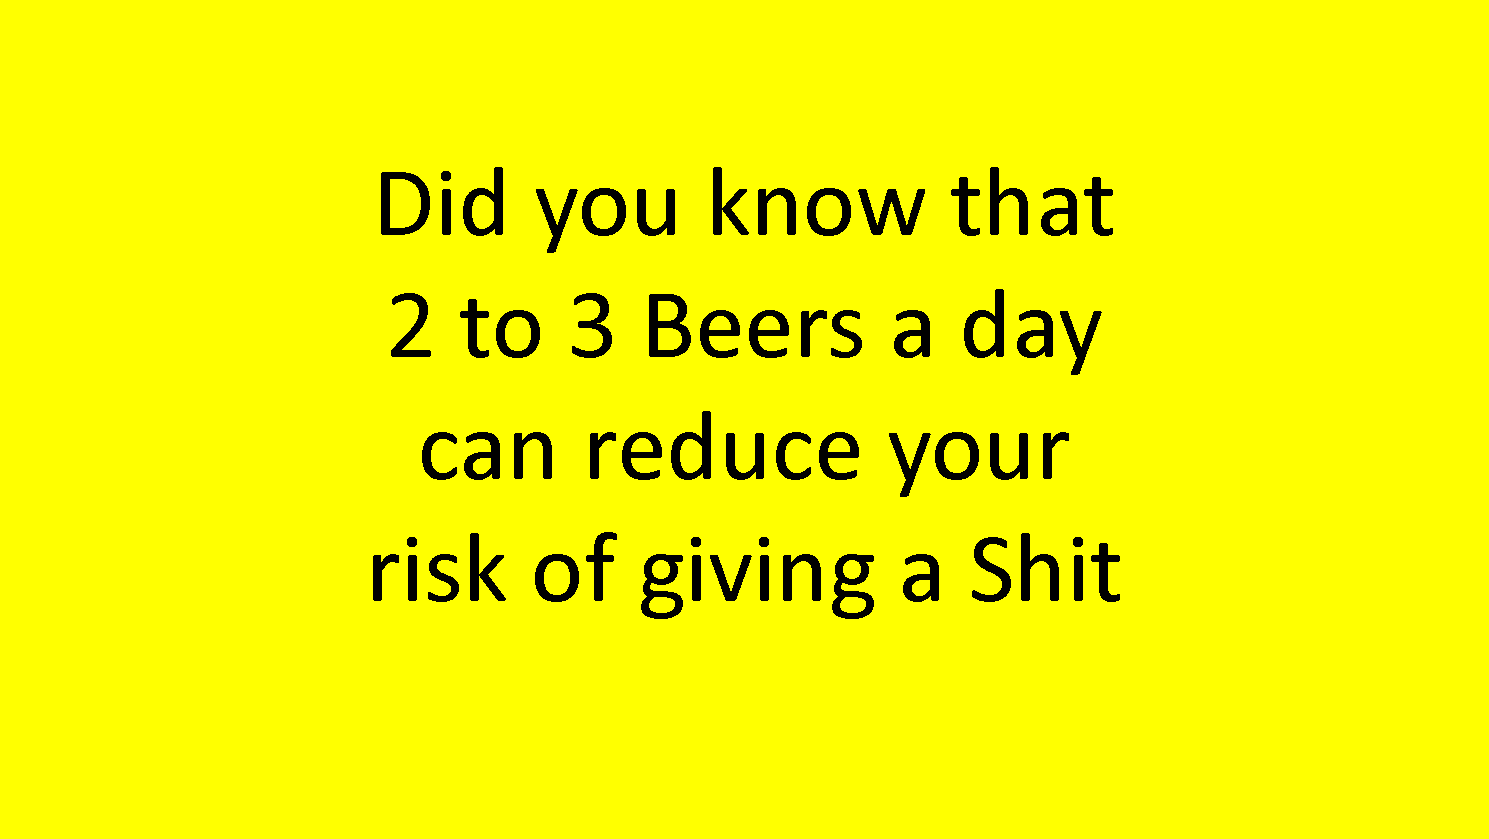 2 to 3 Beers